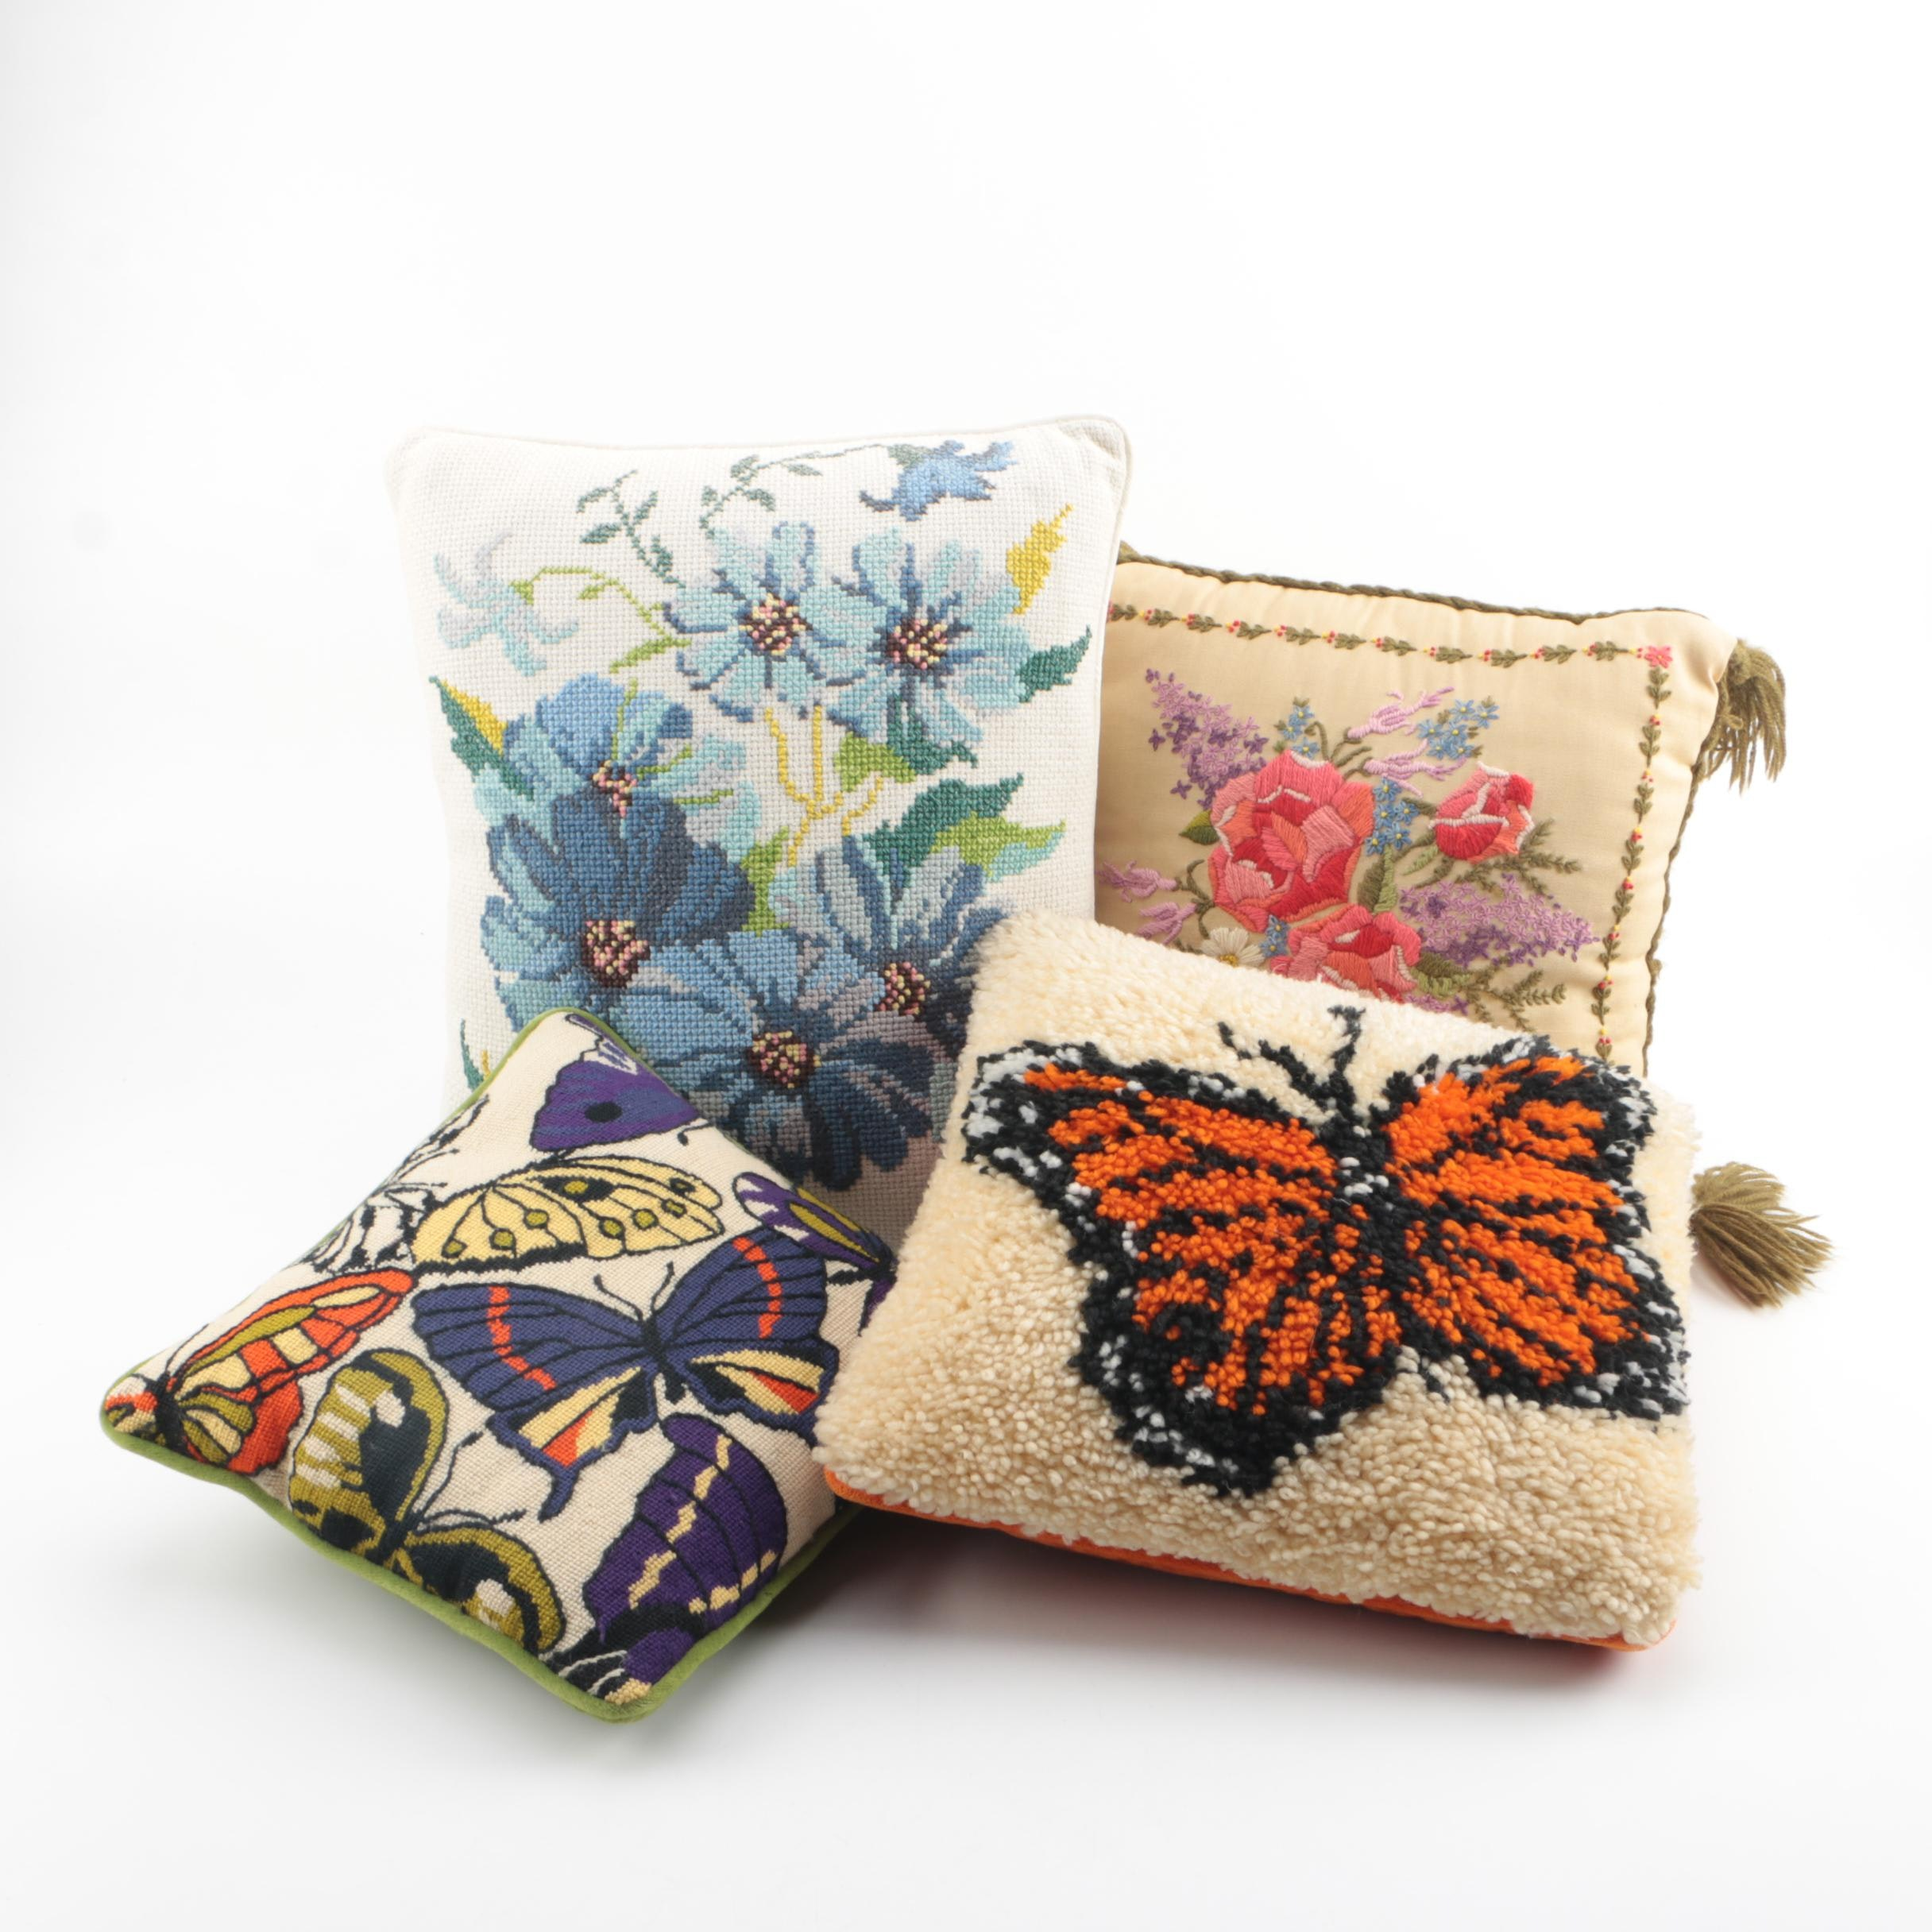 Needlepoint, Embroidered and Hooked Flower and Butterfly Themed Accent Pillows